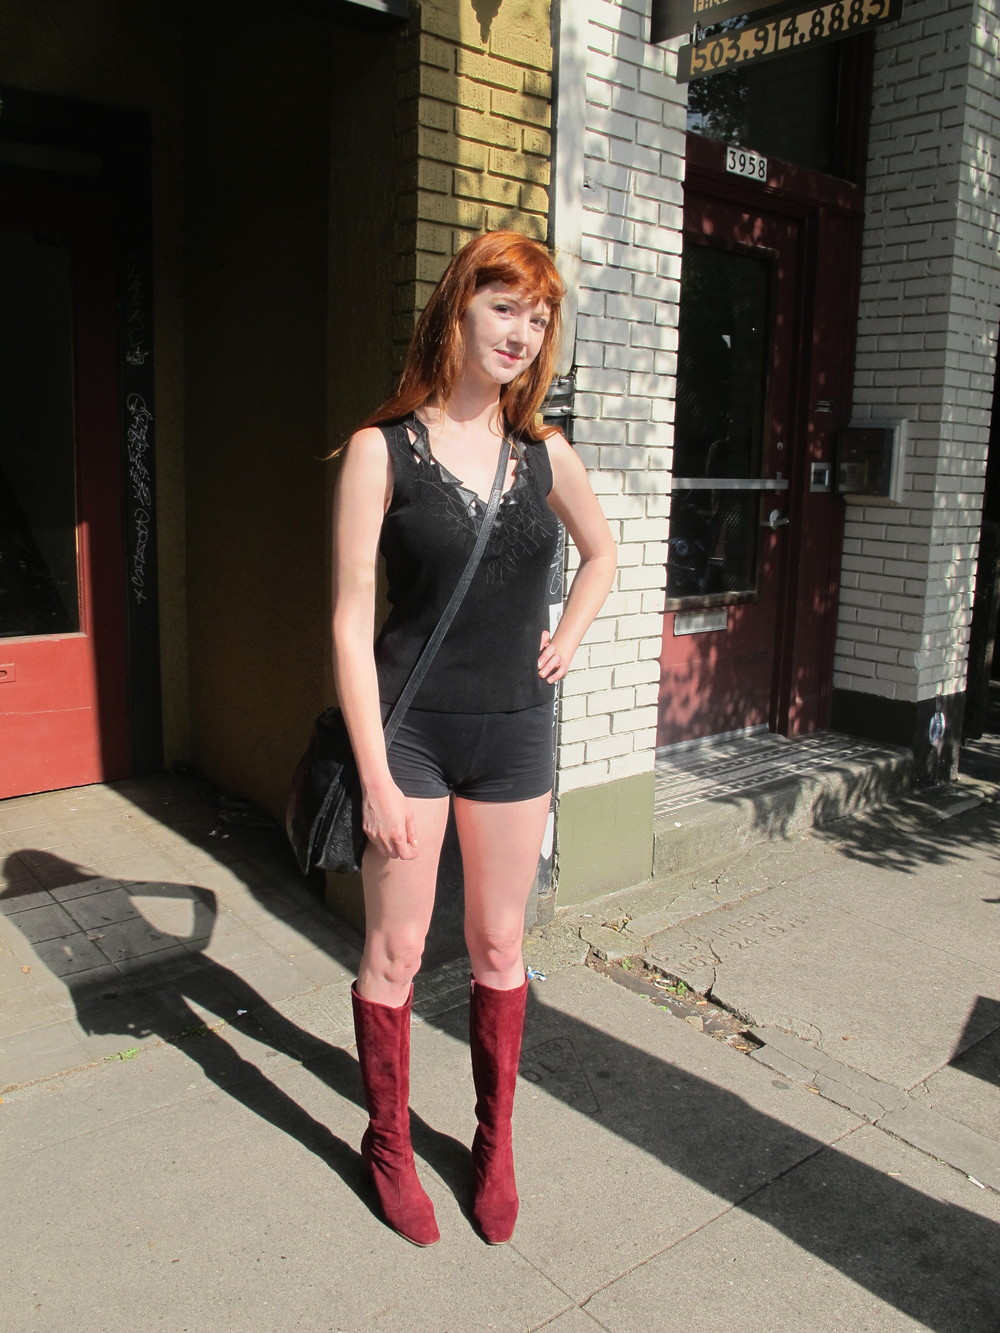 RED suede go-go boots are decidedly a go, and Madison of Las Vegas wears these to a T.